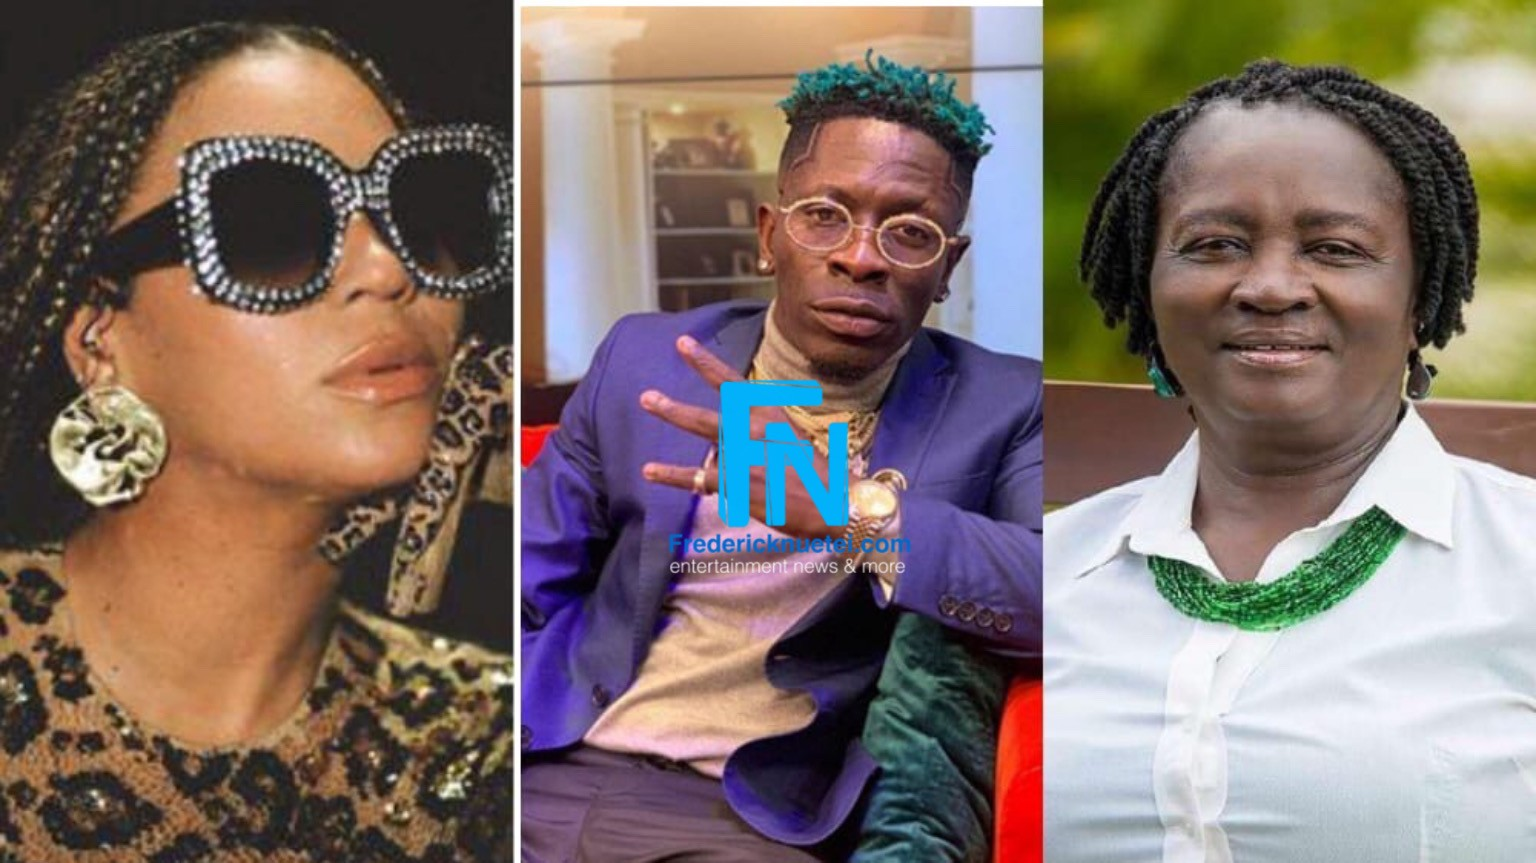 Congratulations To Shatta Wale & All Those Involved In The Great Collaboration With Beyoncé - Prof. Naana Jane Opoku-Agyemang